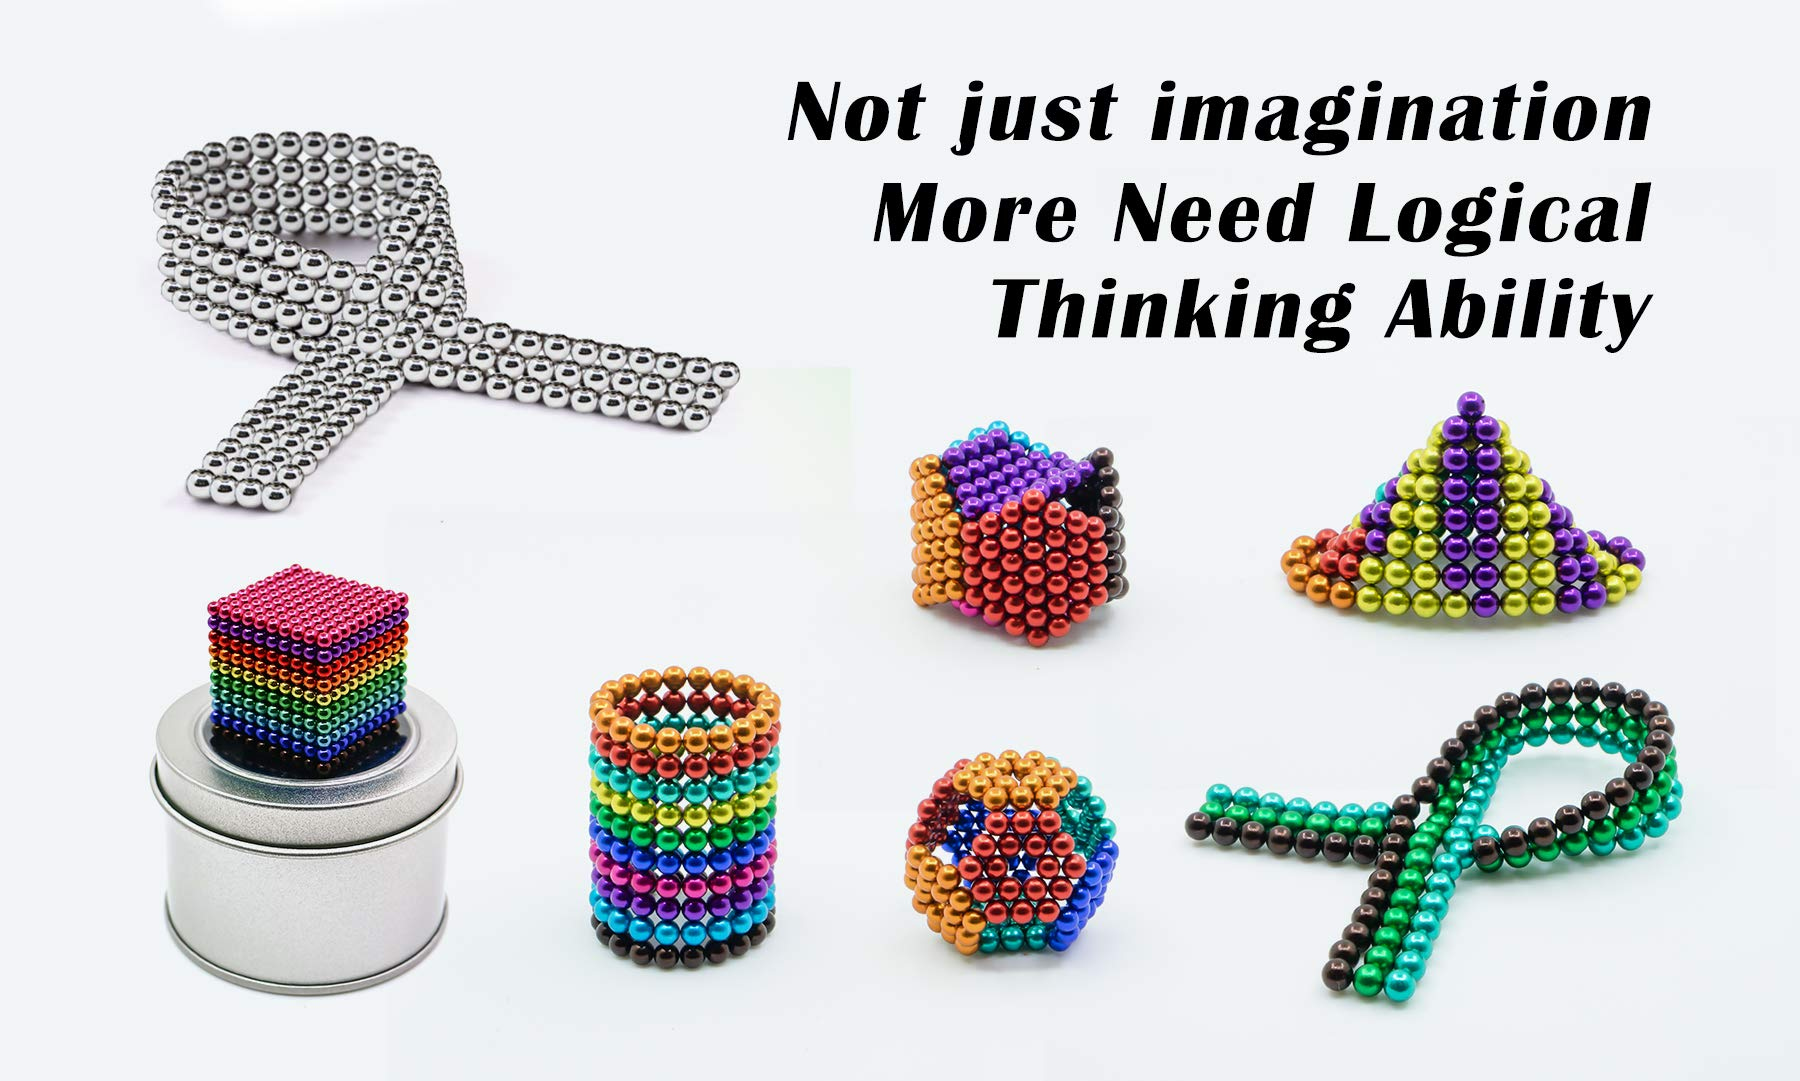 sunsoy 1000 Pieces 5mm Sculpture Building Blocks Toys for Intelligence Learning -Office Toy & Stress Relief for Adults Colorful by sunsoy (Image #6)